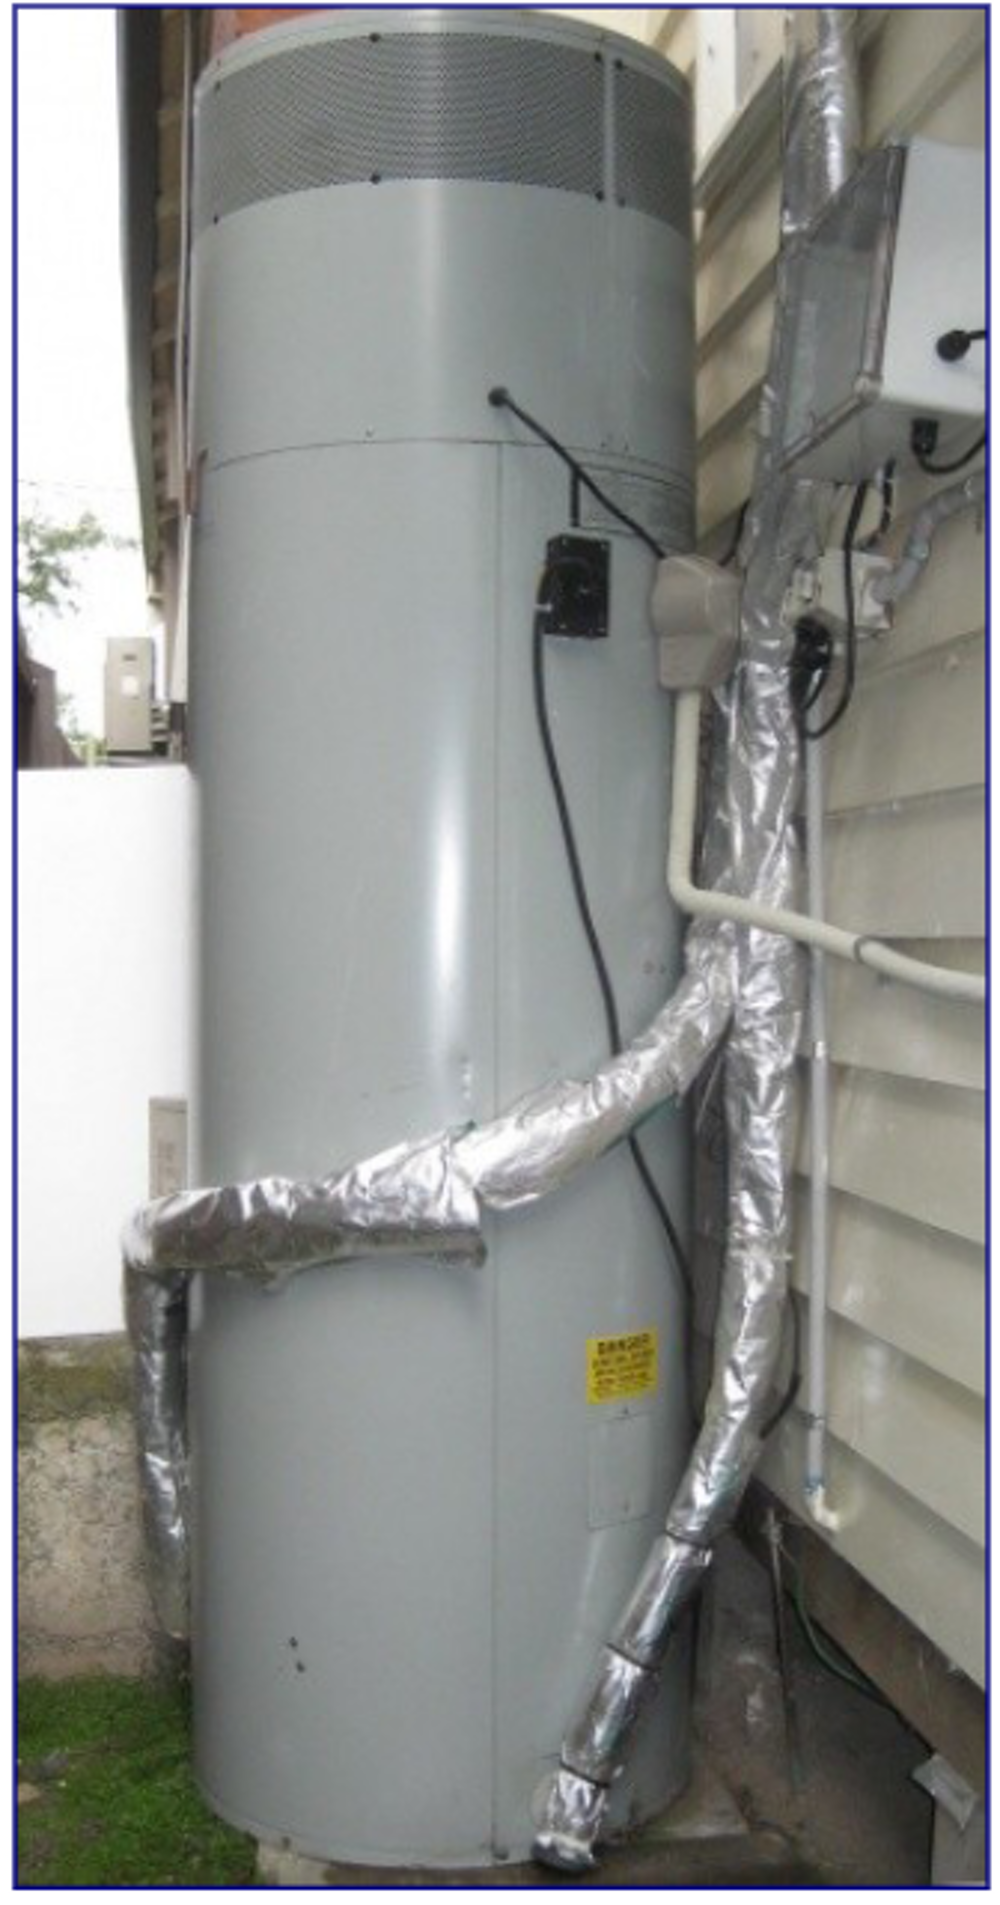 Get More Out Of Your Solar Power System By Using Water As A Battery Wiring House Homework Tower Hot Heat Pump Can Capture Energy Than It Uses R Keech Author Provided